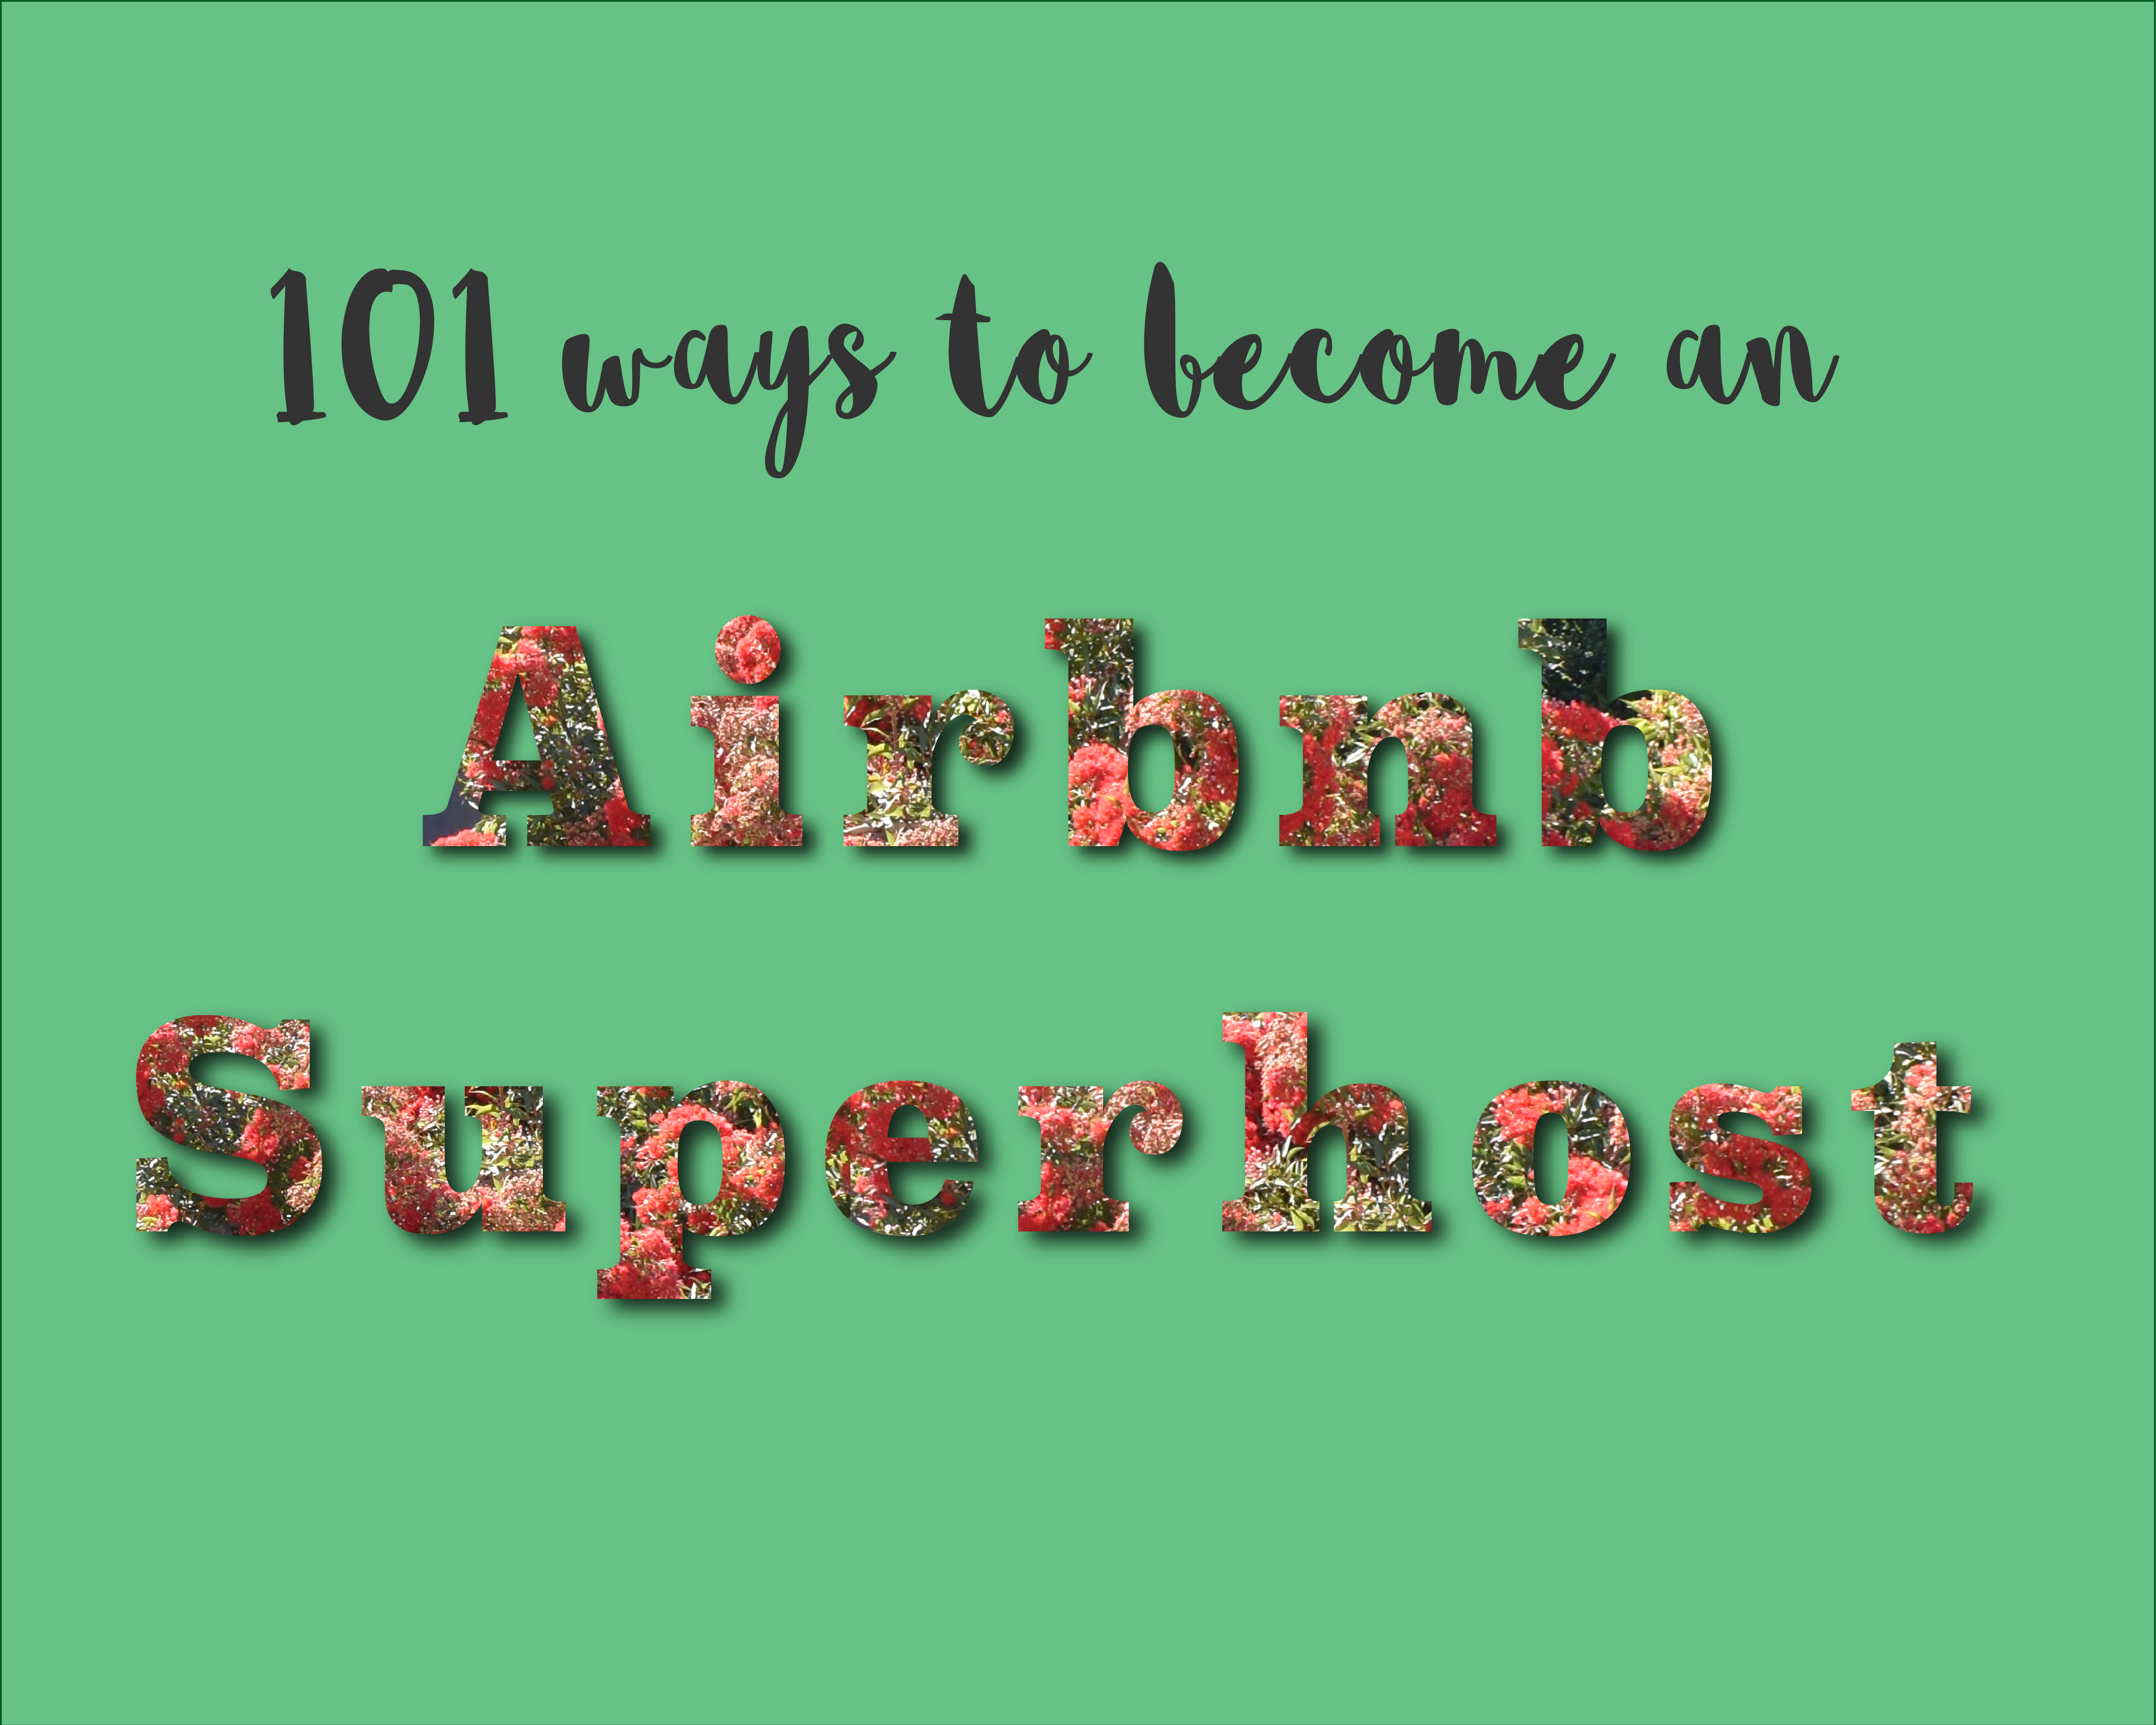 101 ways to become an airbnb superhost graphic